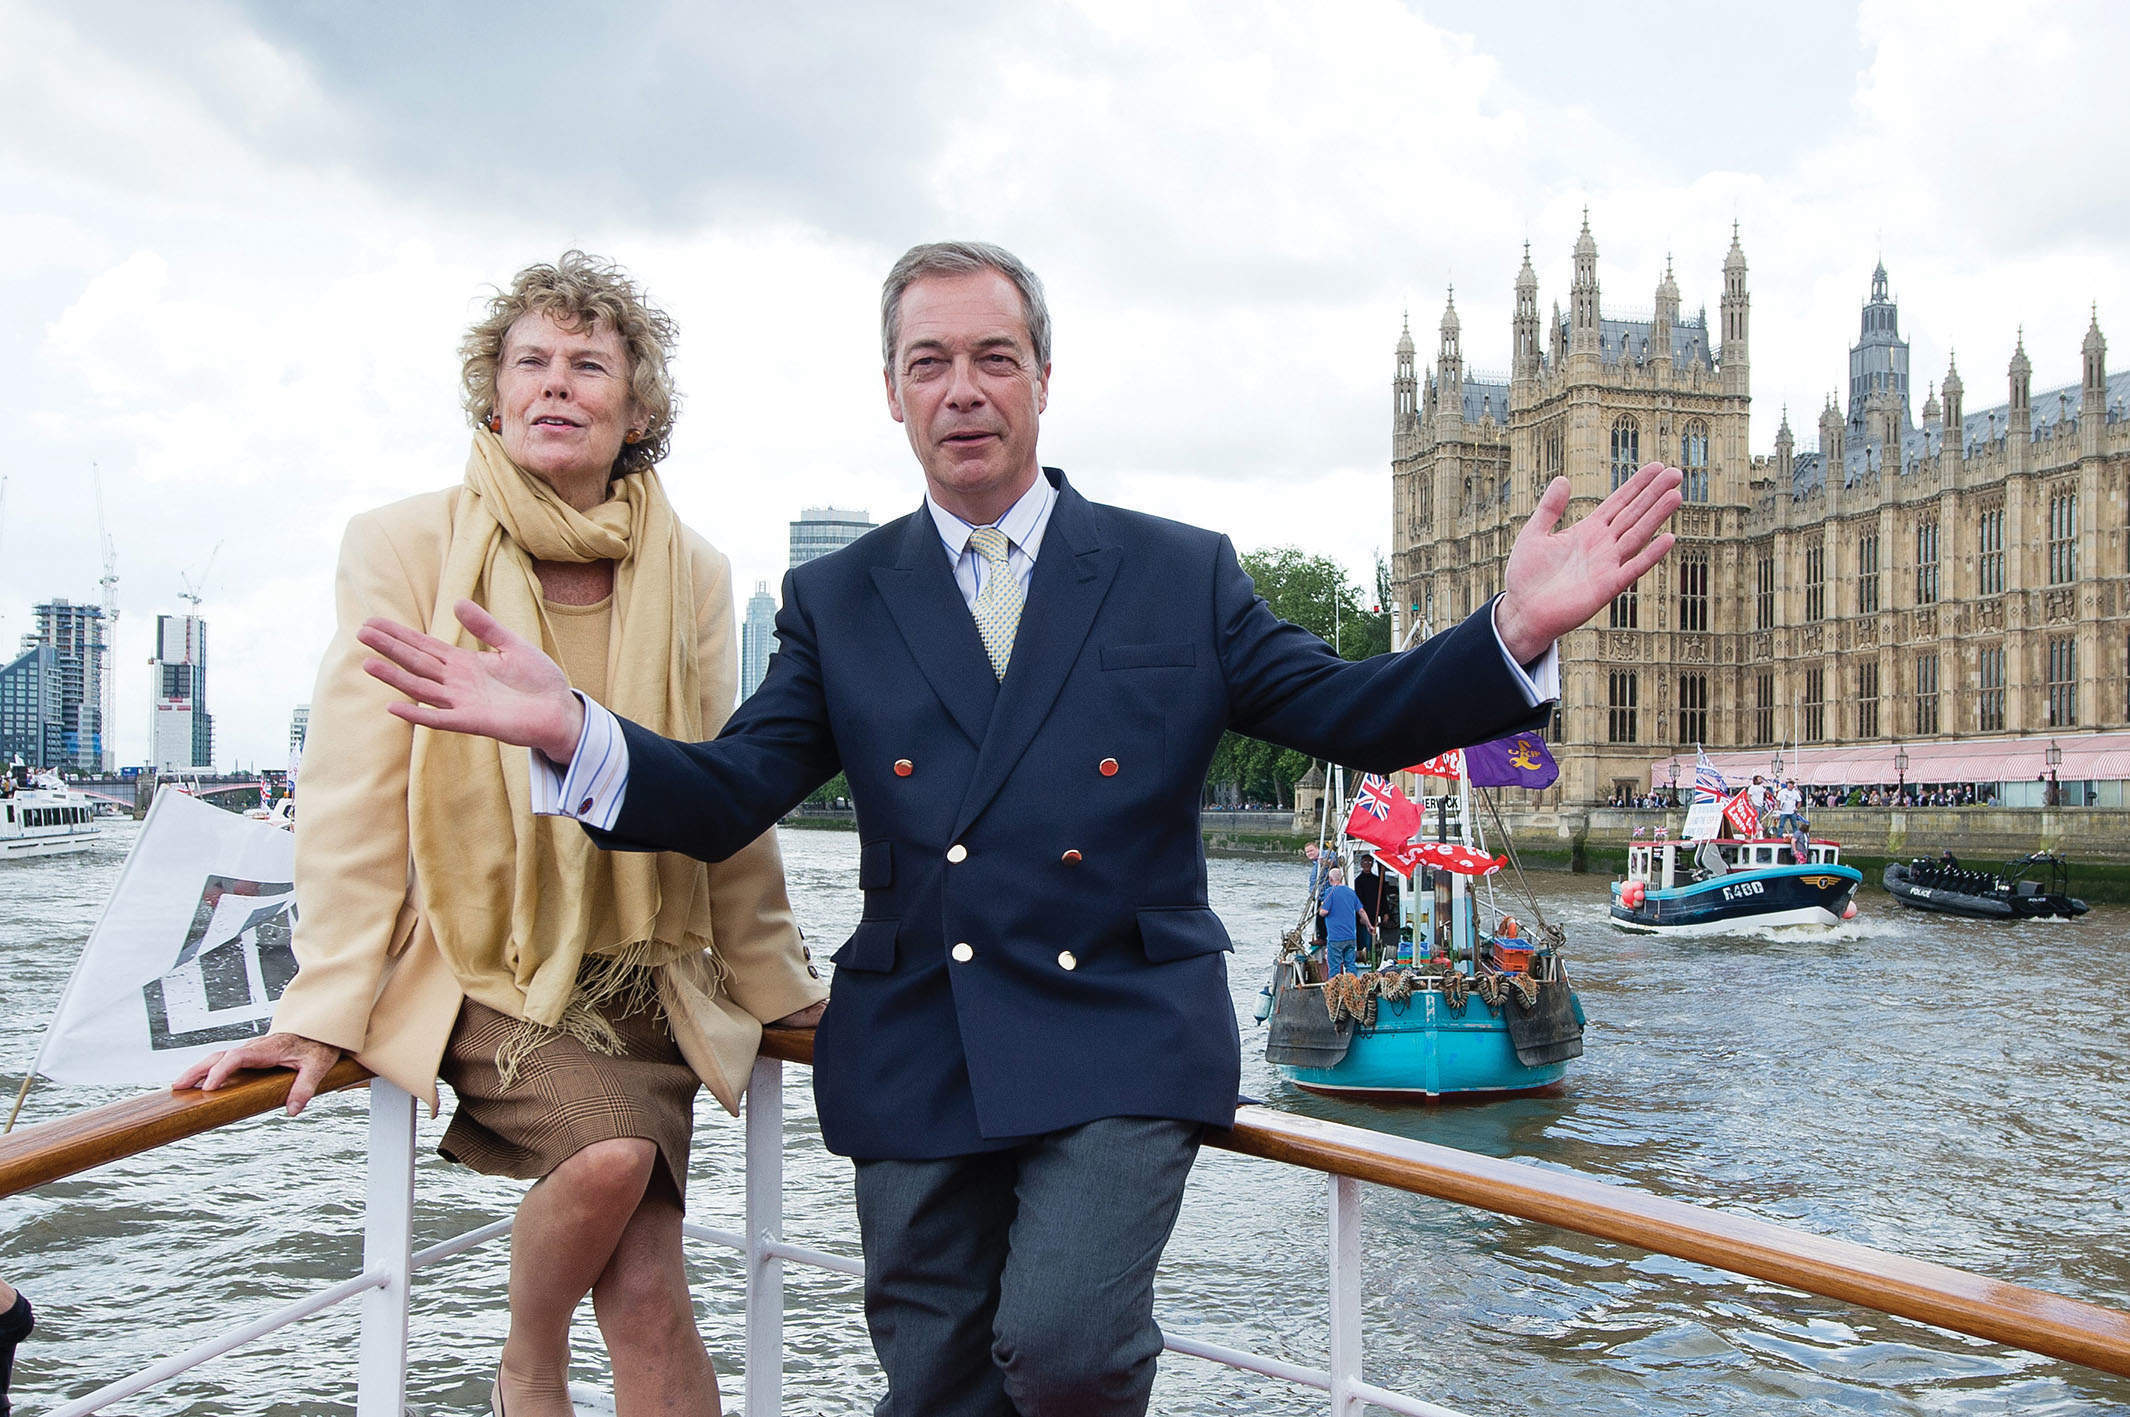 View from Vauxhall: Ground Zero for the Take Down Kate Hoey campaign